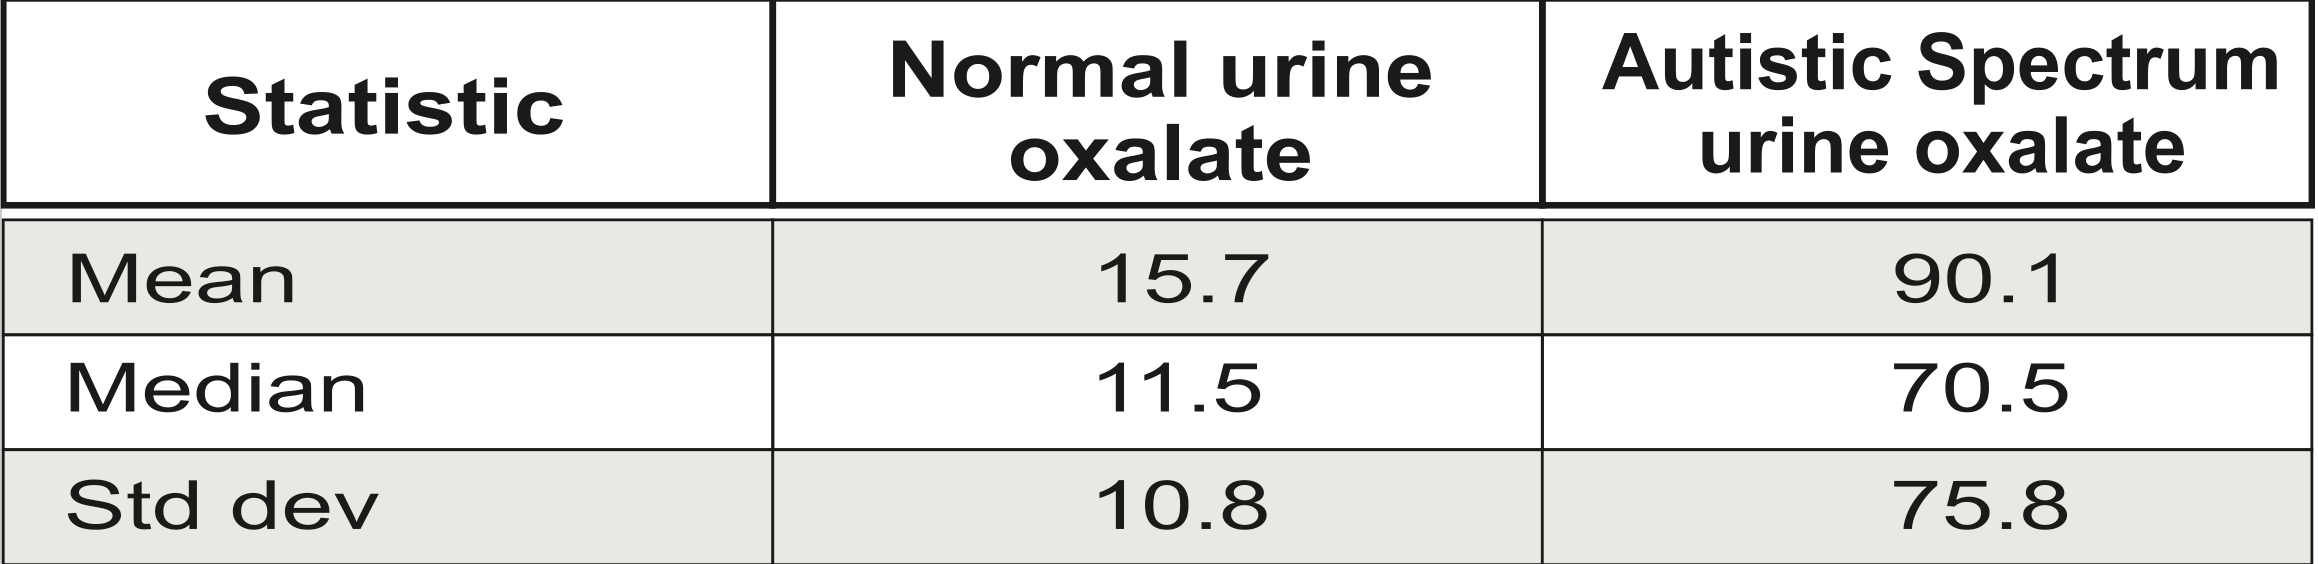 OXALATES CONTROL IS A MAJOR NEW FACTOR IN AUTISM THERAPY